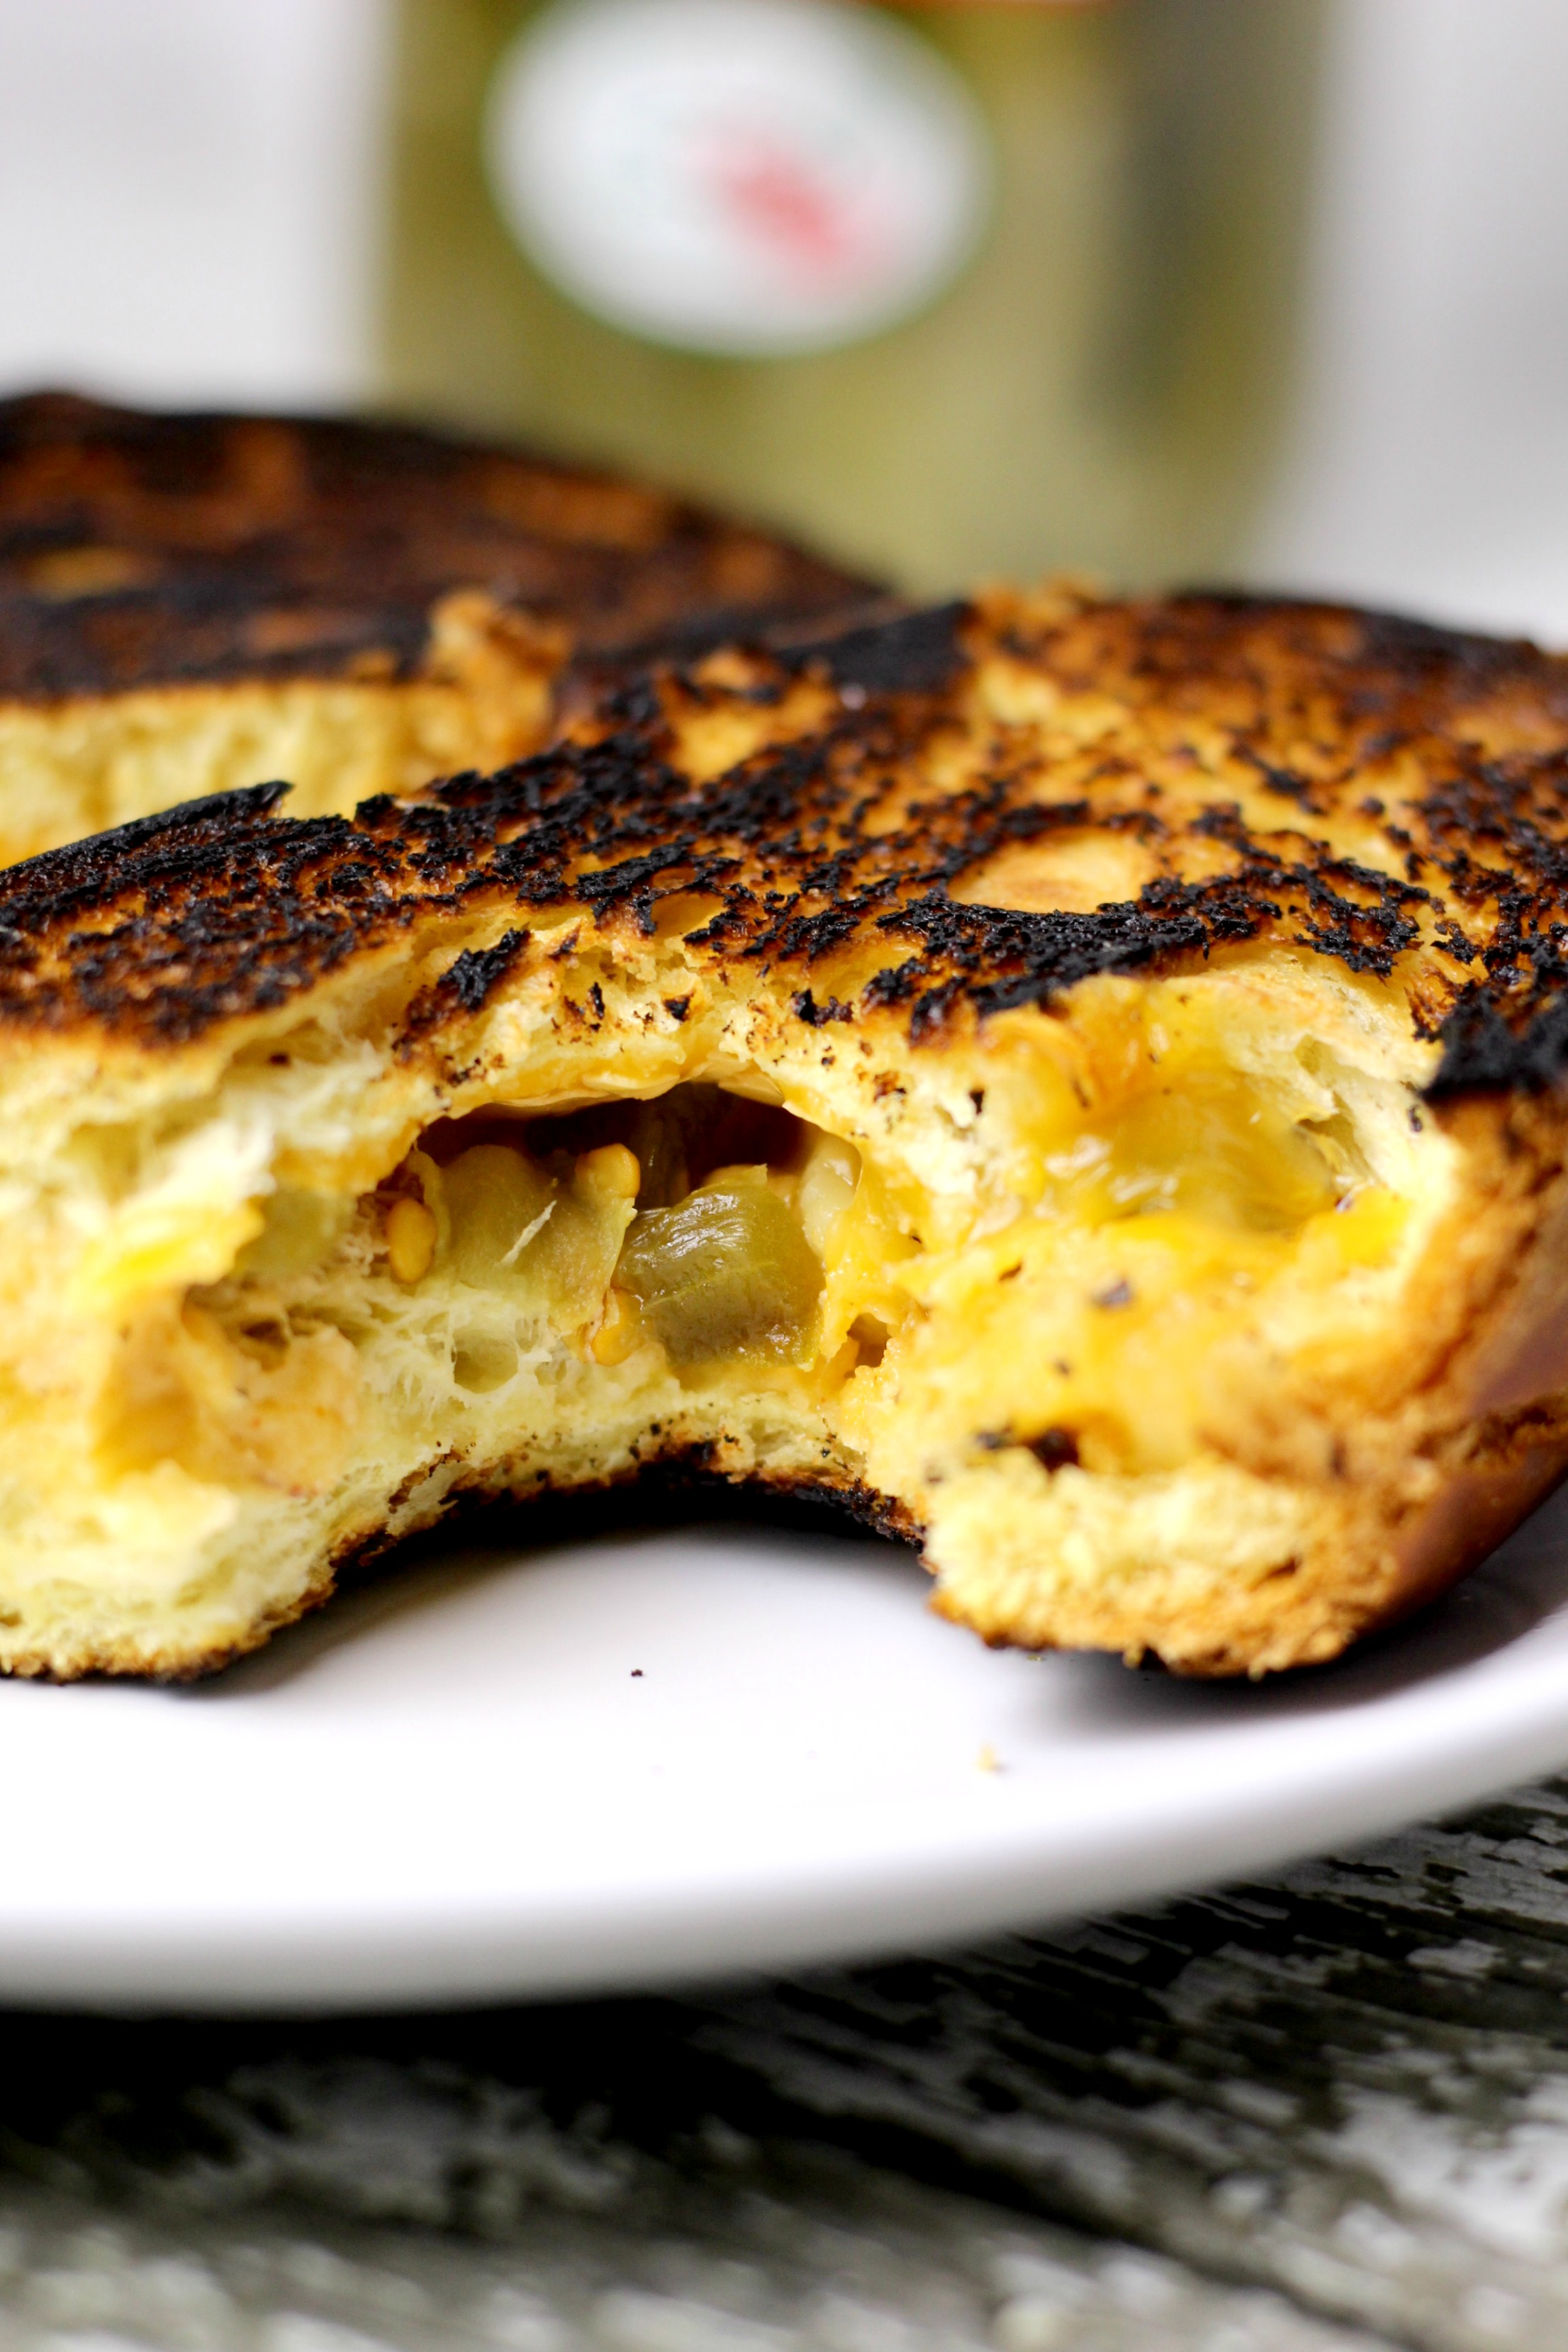 grilled macaroni and cheese sandwich www.mannaandspice.com